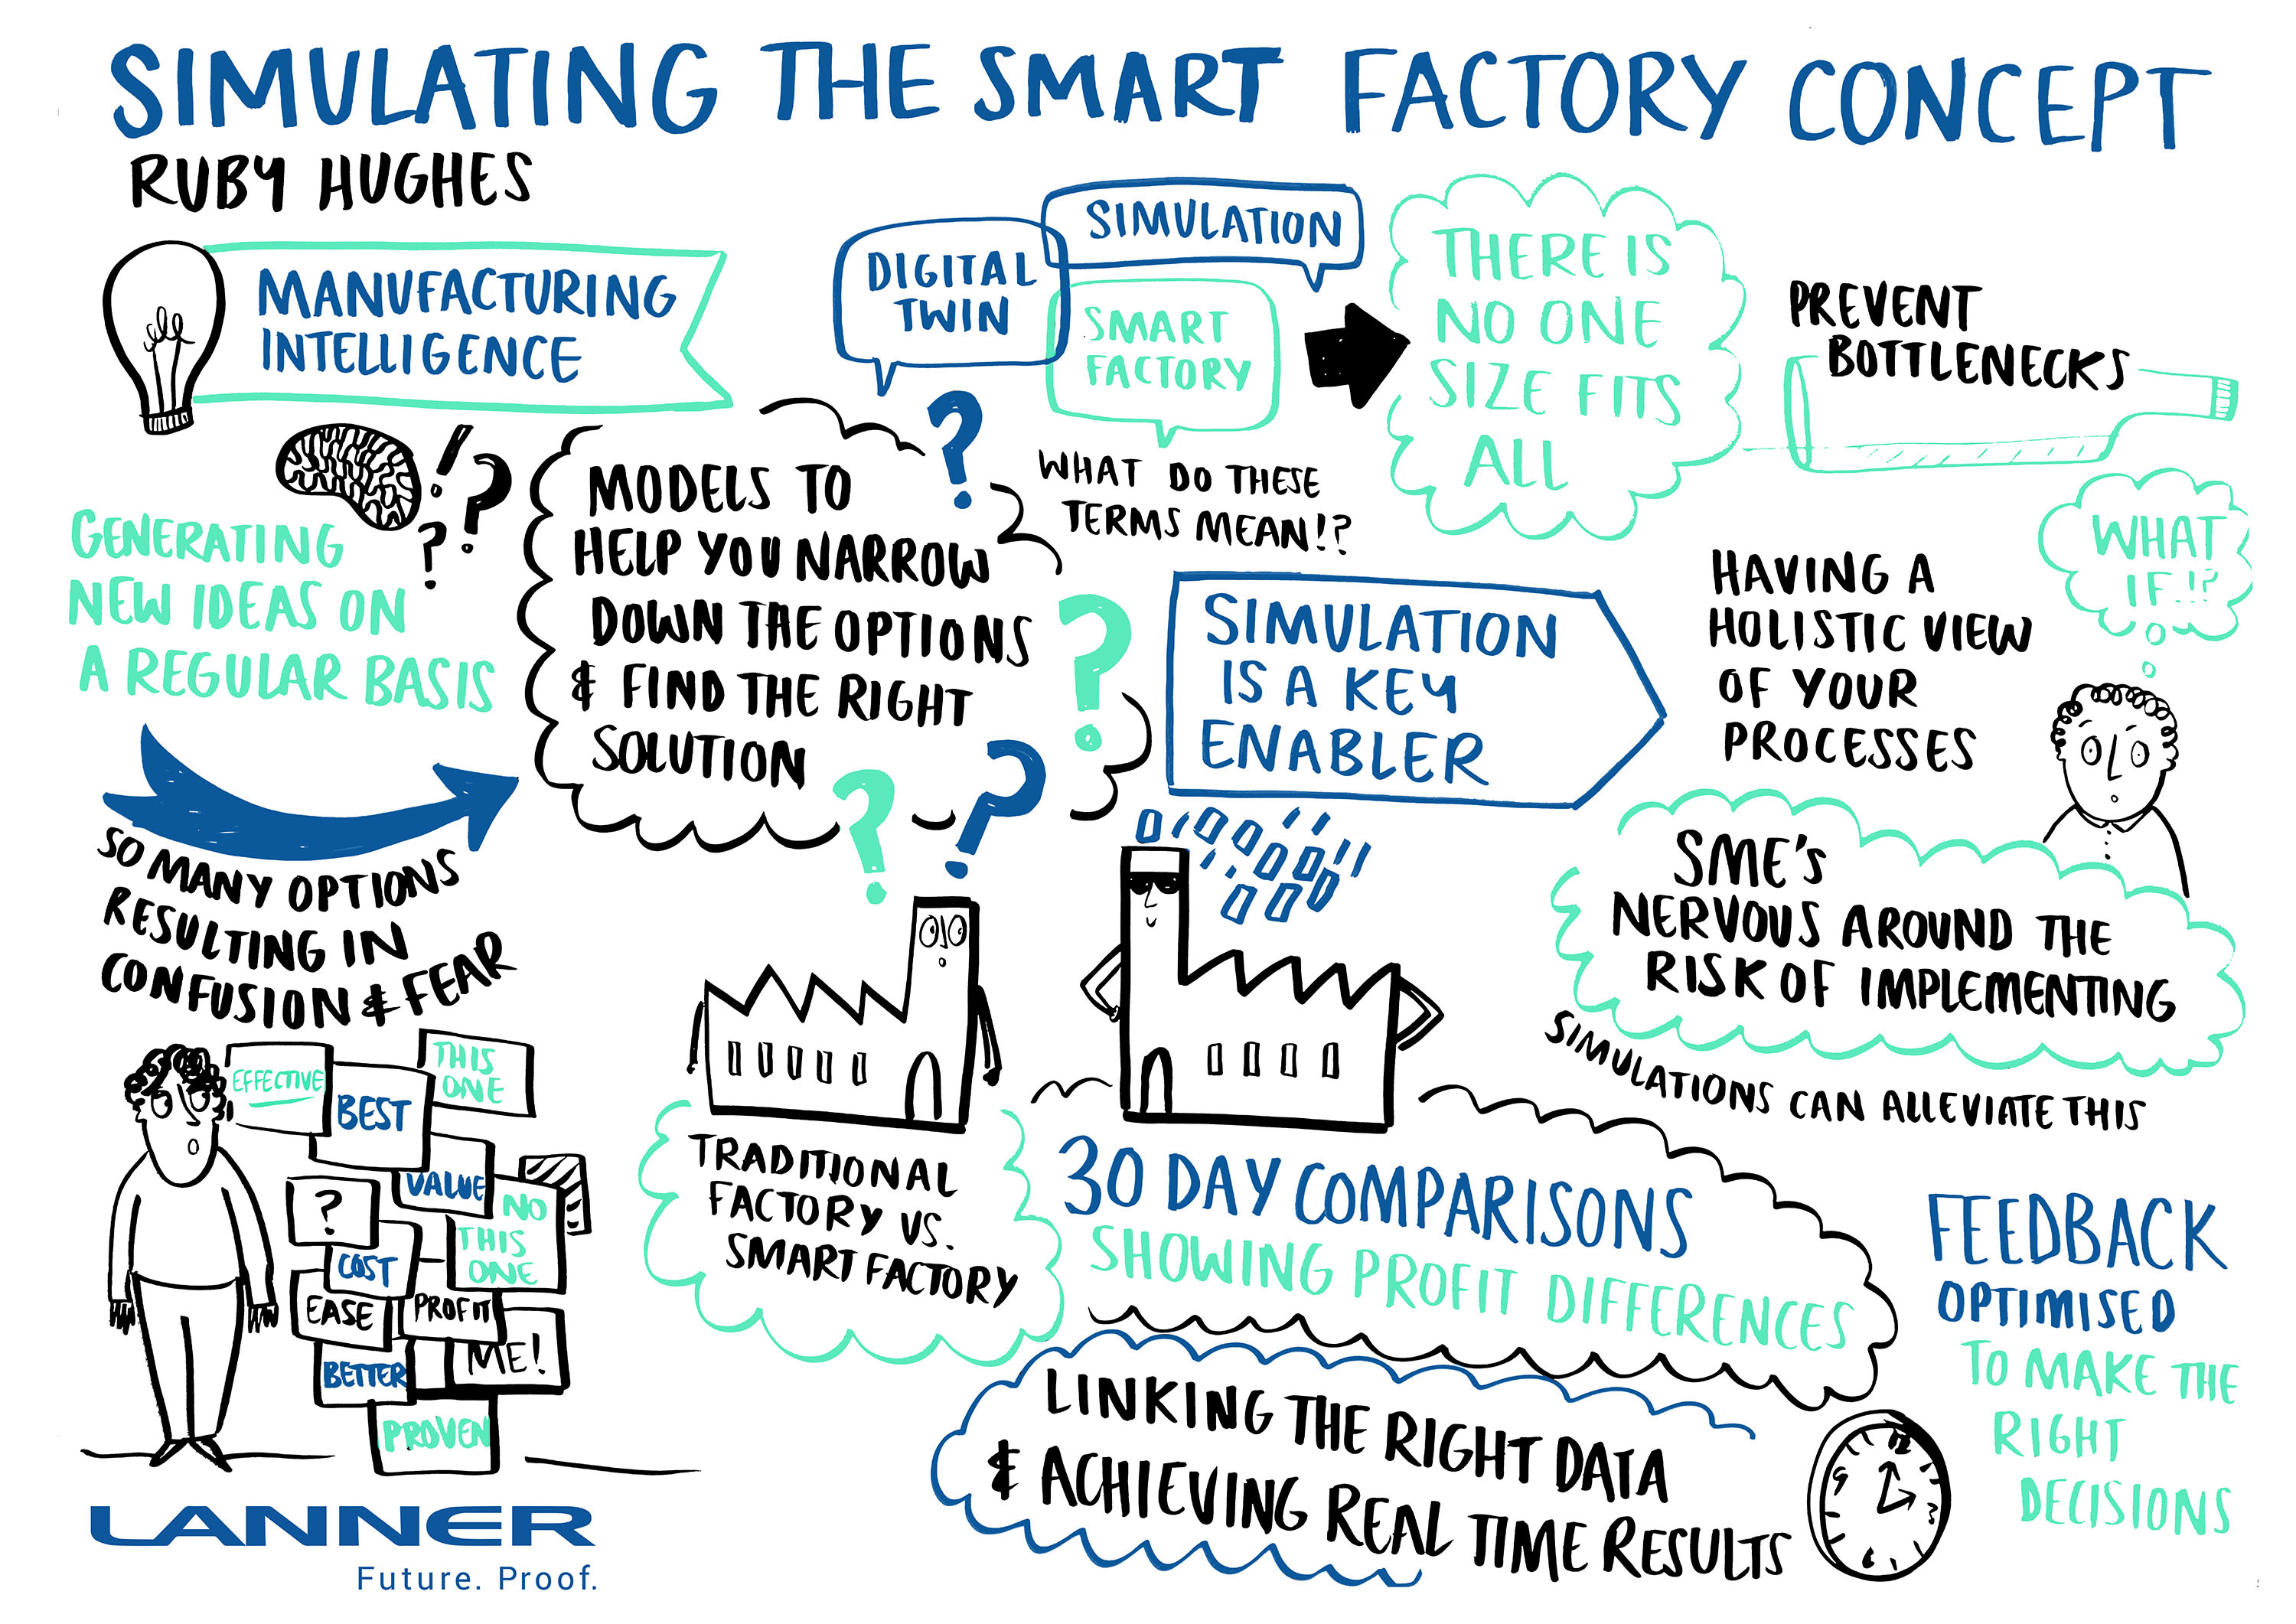 2473-08_Simulating_the_smart_factory_concept.jpg